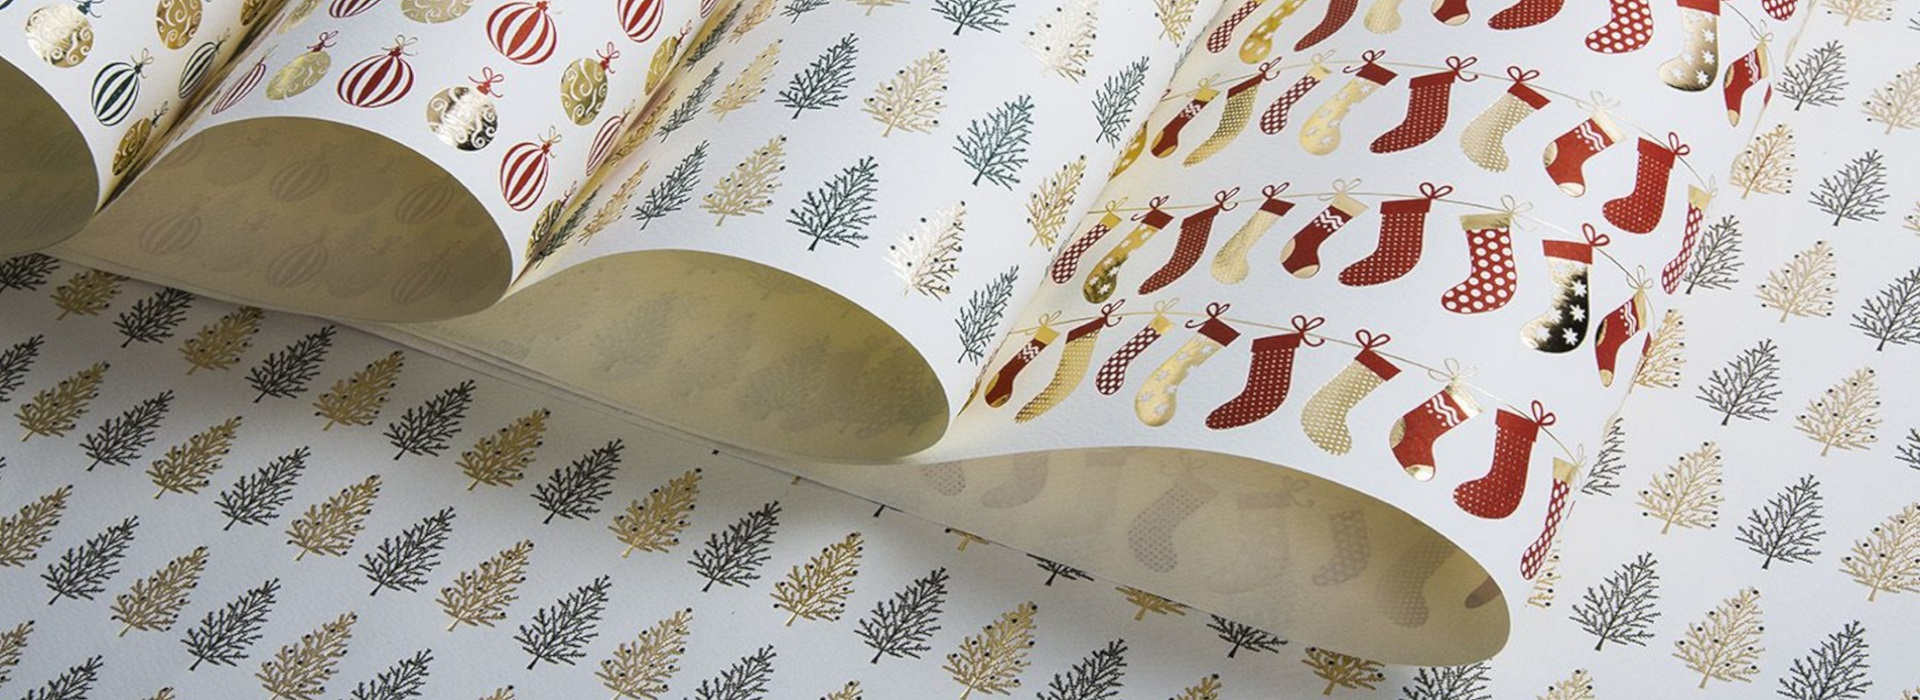 Christmas decorative papers for gift wrapping by Rossi1931